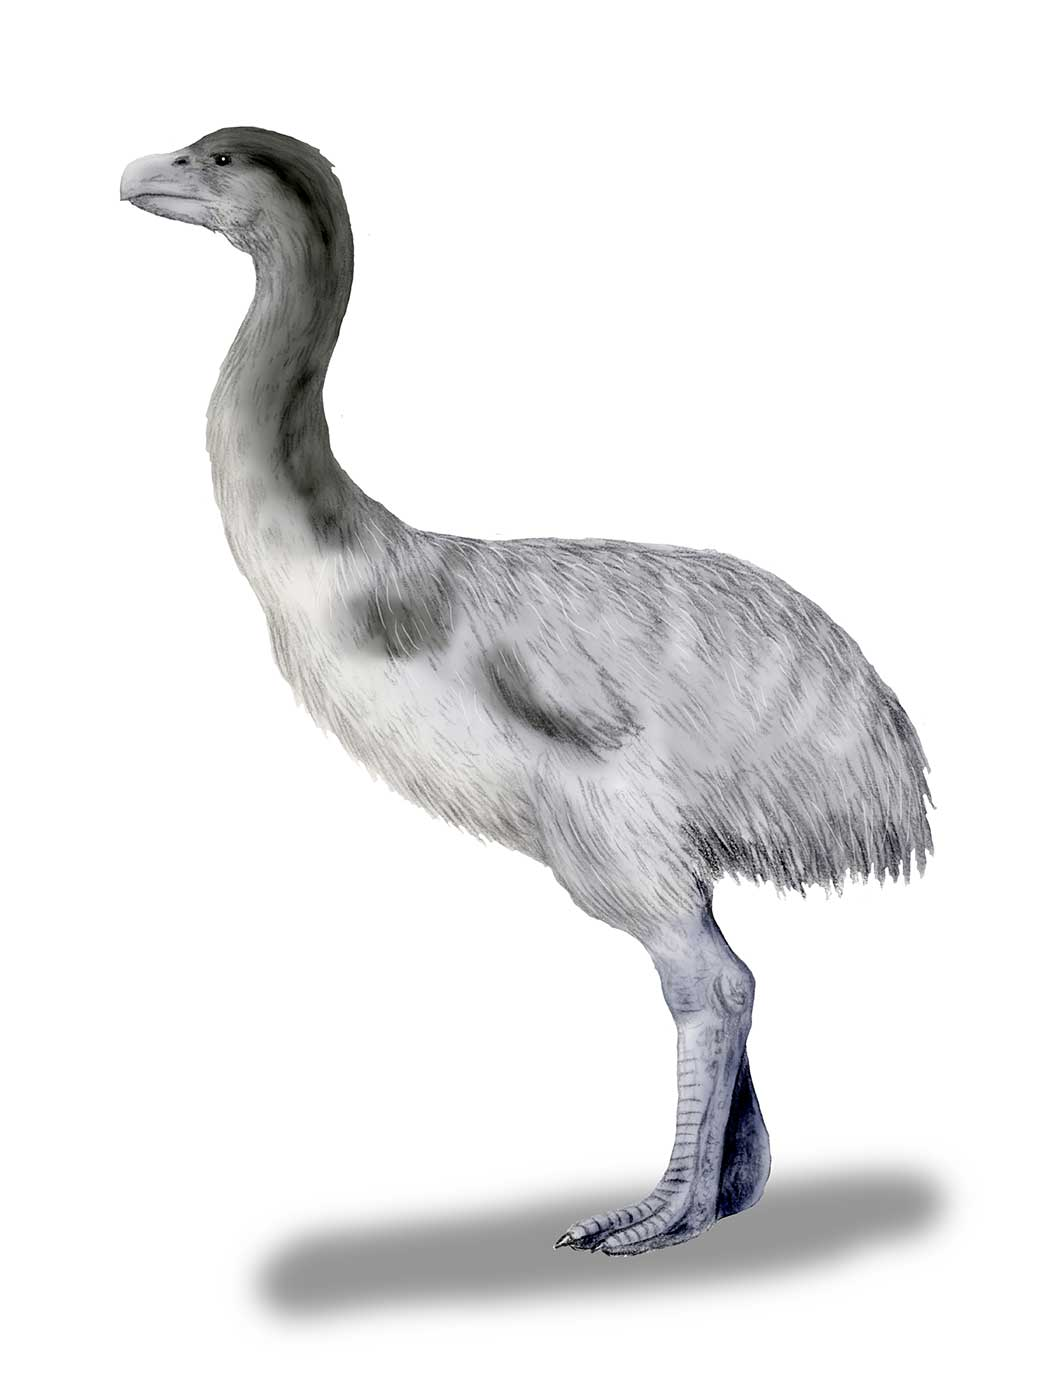 Colour illustration of a large emu-like bird with thick legs and white-grey feathers. - click to view larger image